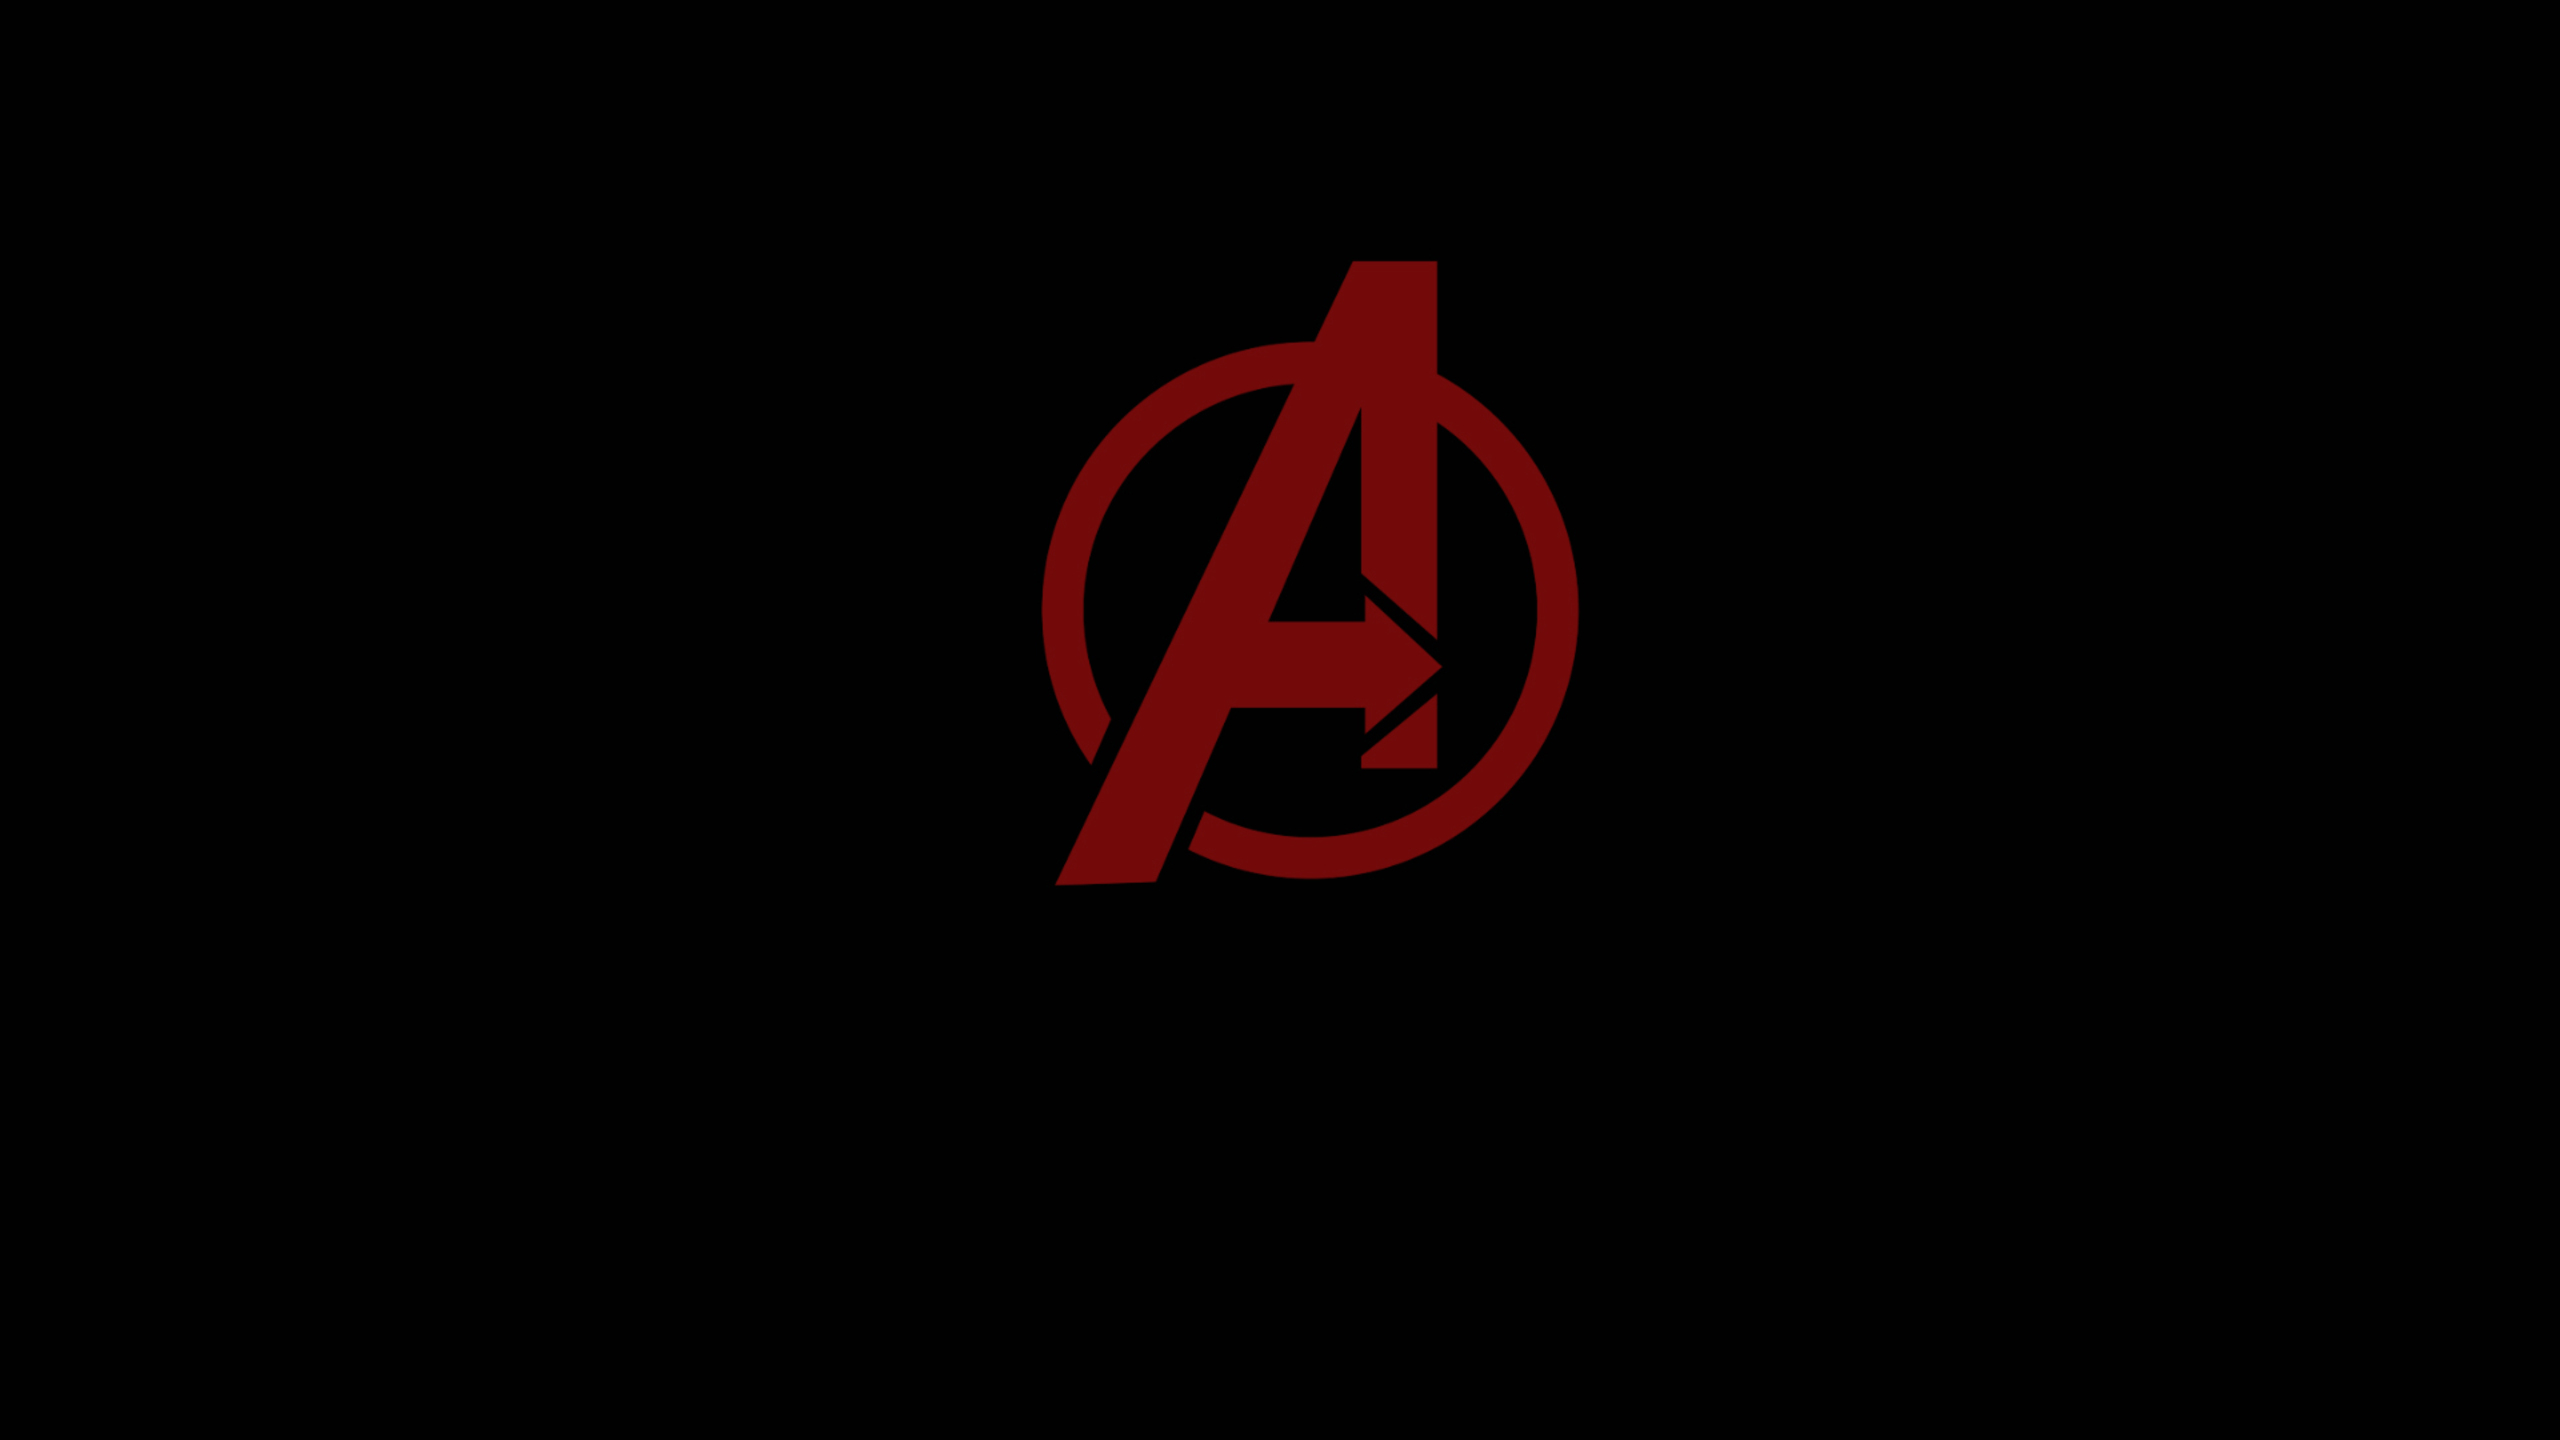 2560x1440 avengers minimal logo 1440p resolution hd 4k wallpapers